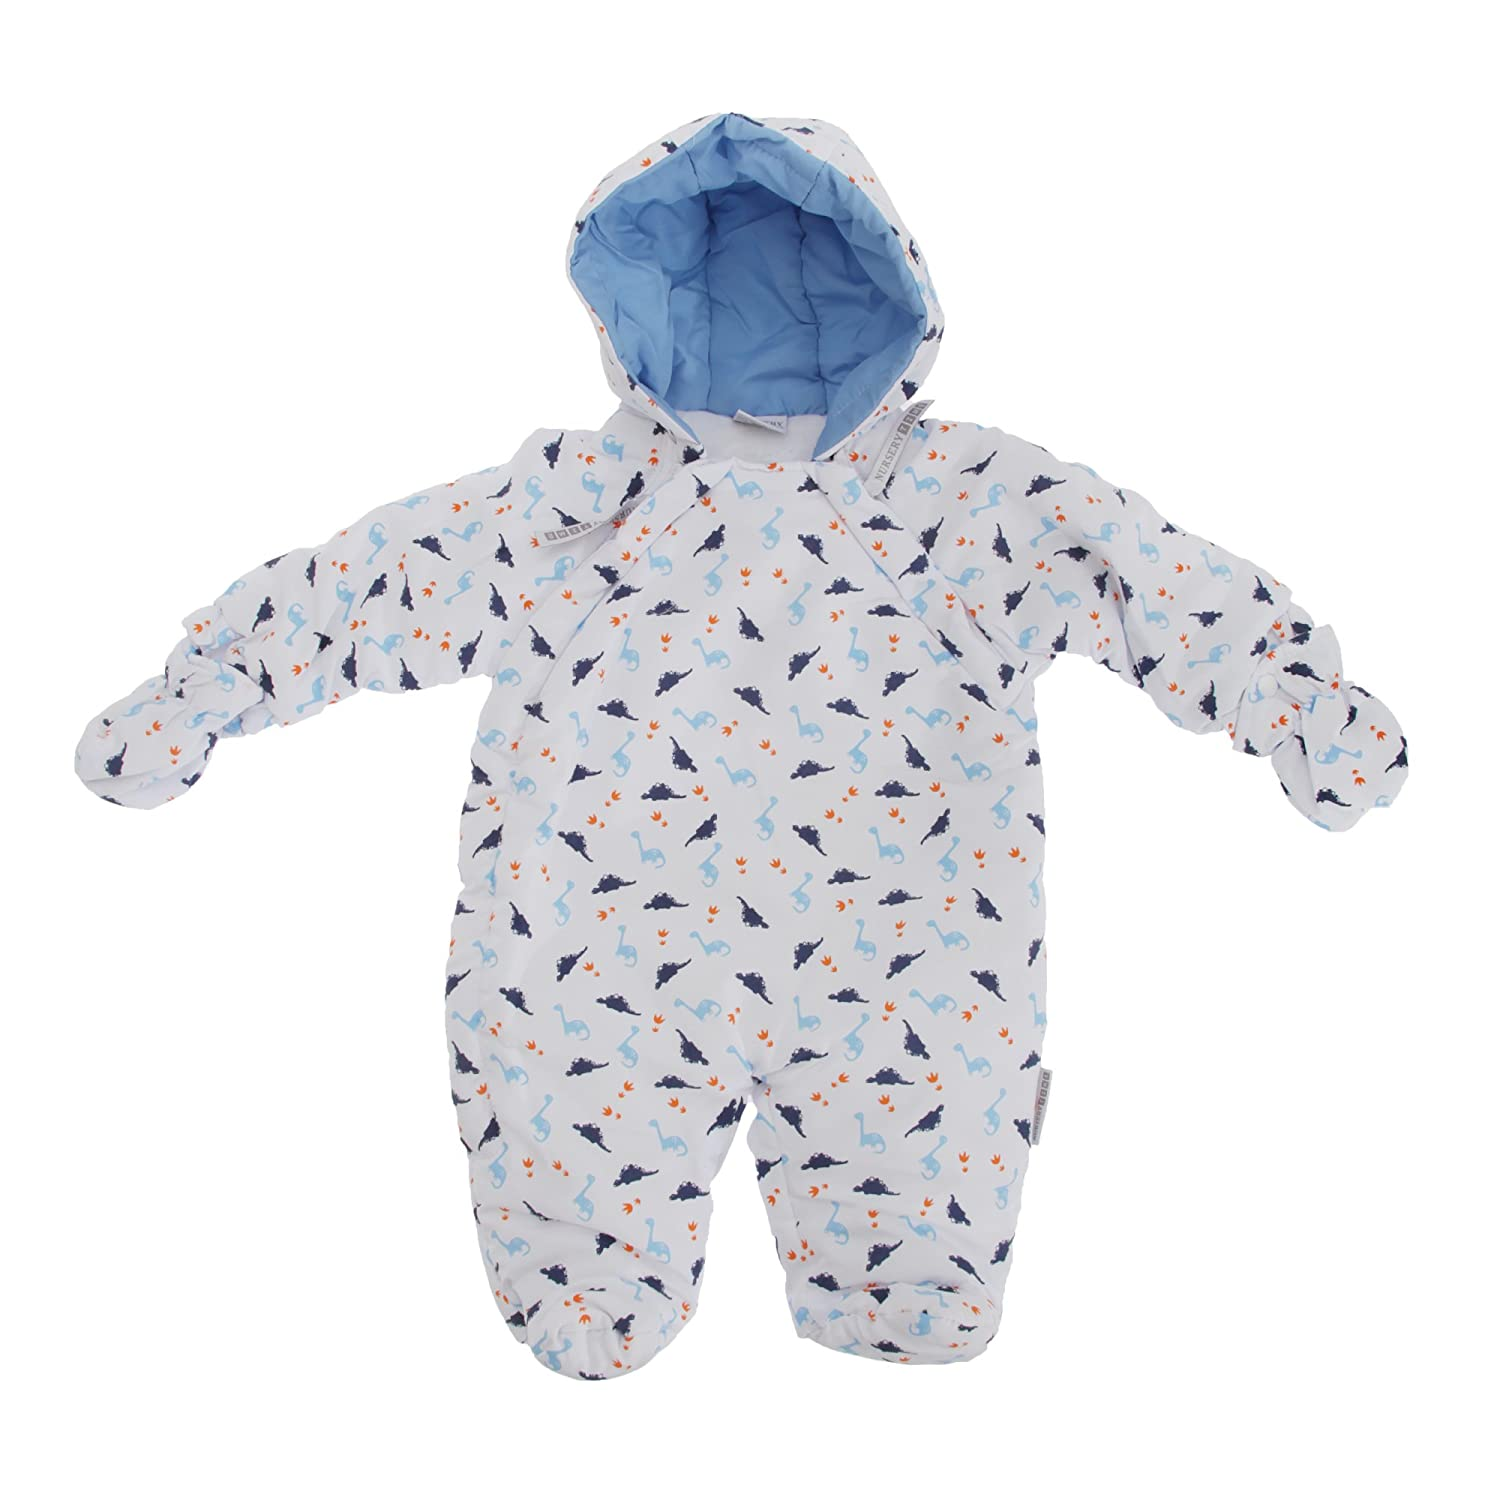 Baby Boys Dinosaur Pattern All In One Hooded Winter Snowsuit (3-6 Months) (White) Universal Textiles UTBABY991_4